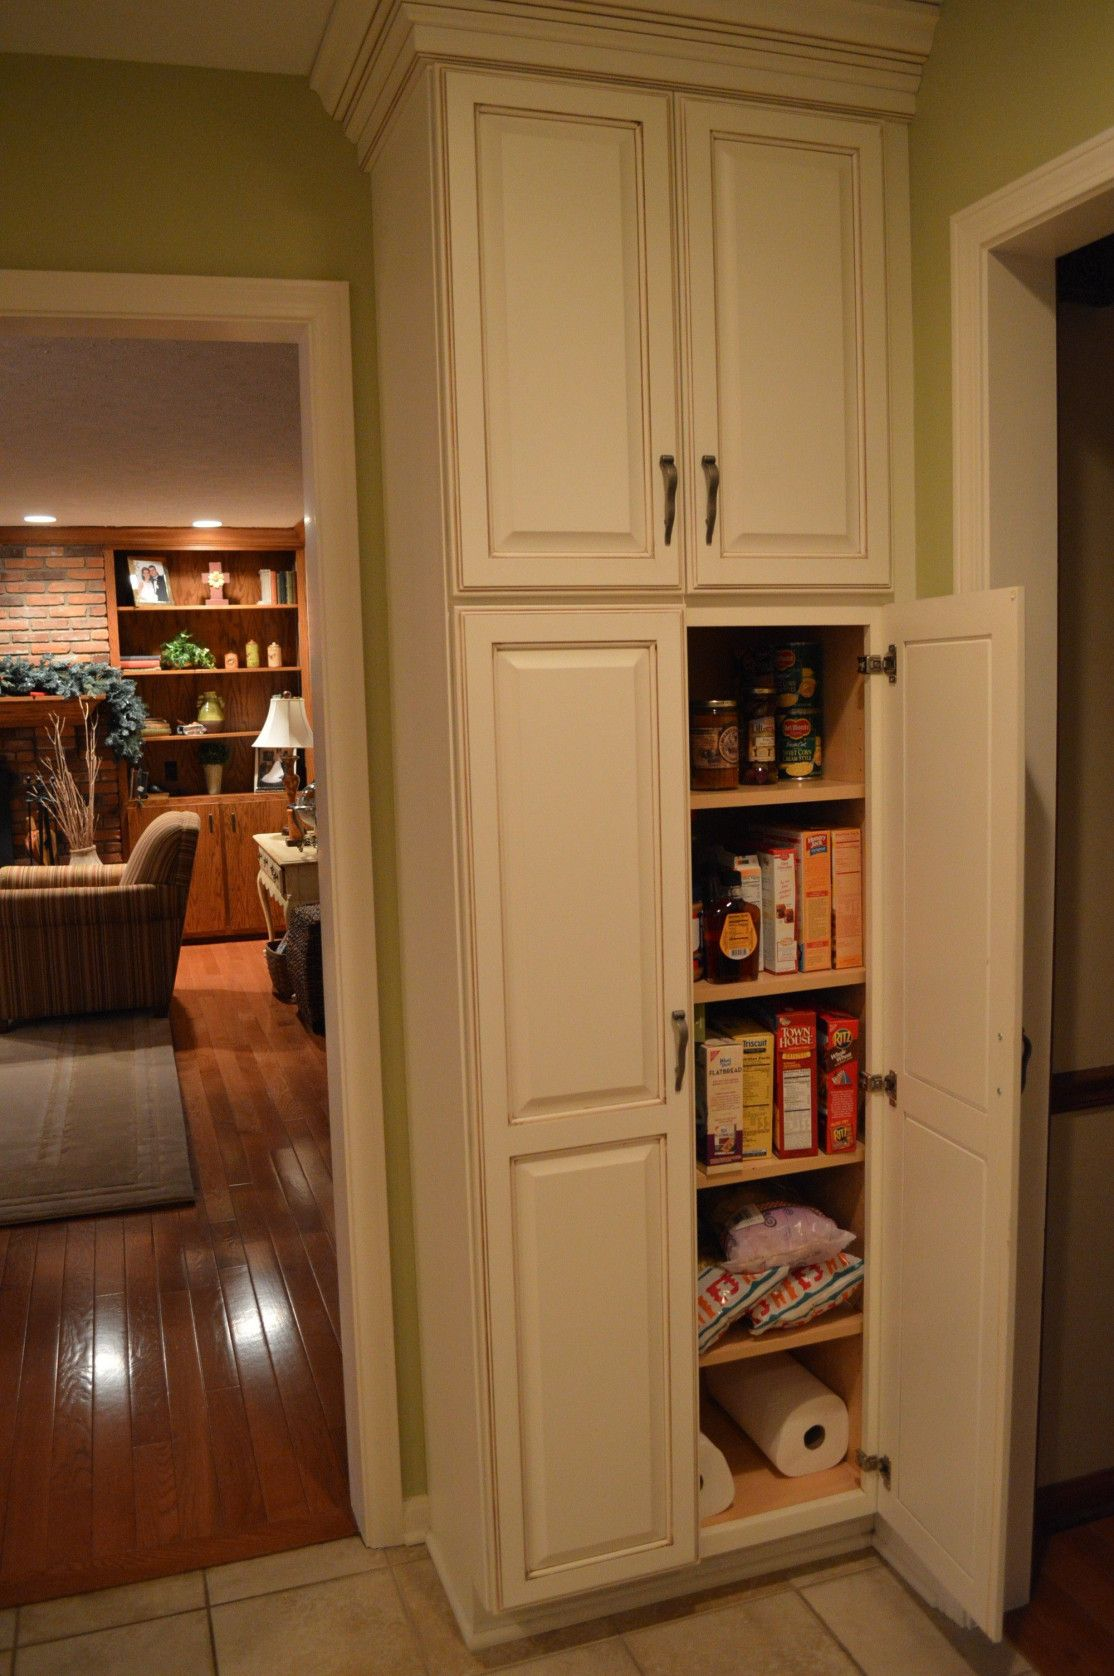 77 18 Deep Pantry Cabinet Kitchen Cabinets Update Ideas On A Budget Check More At Http Www P Stand Alone Kitchen Pantry Pantry Design Freestanding Kitchen